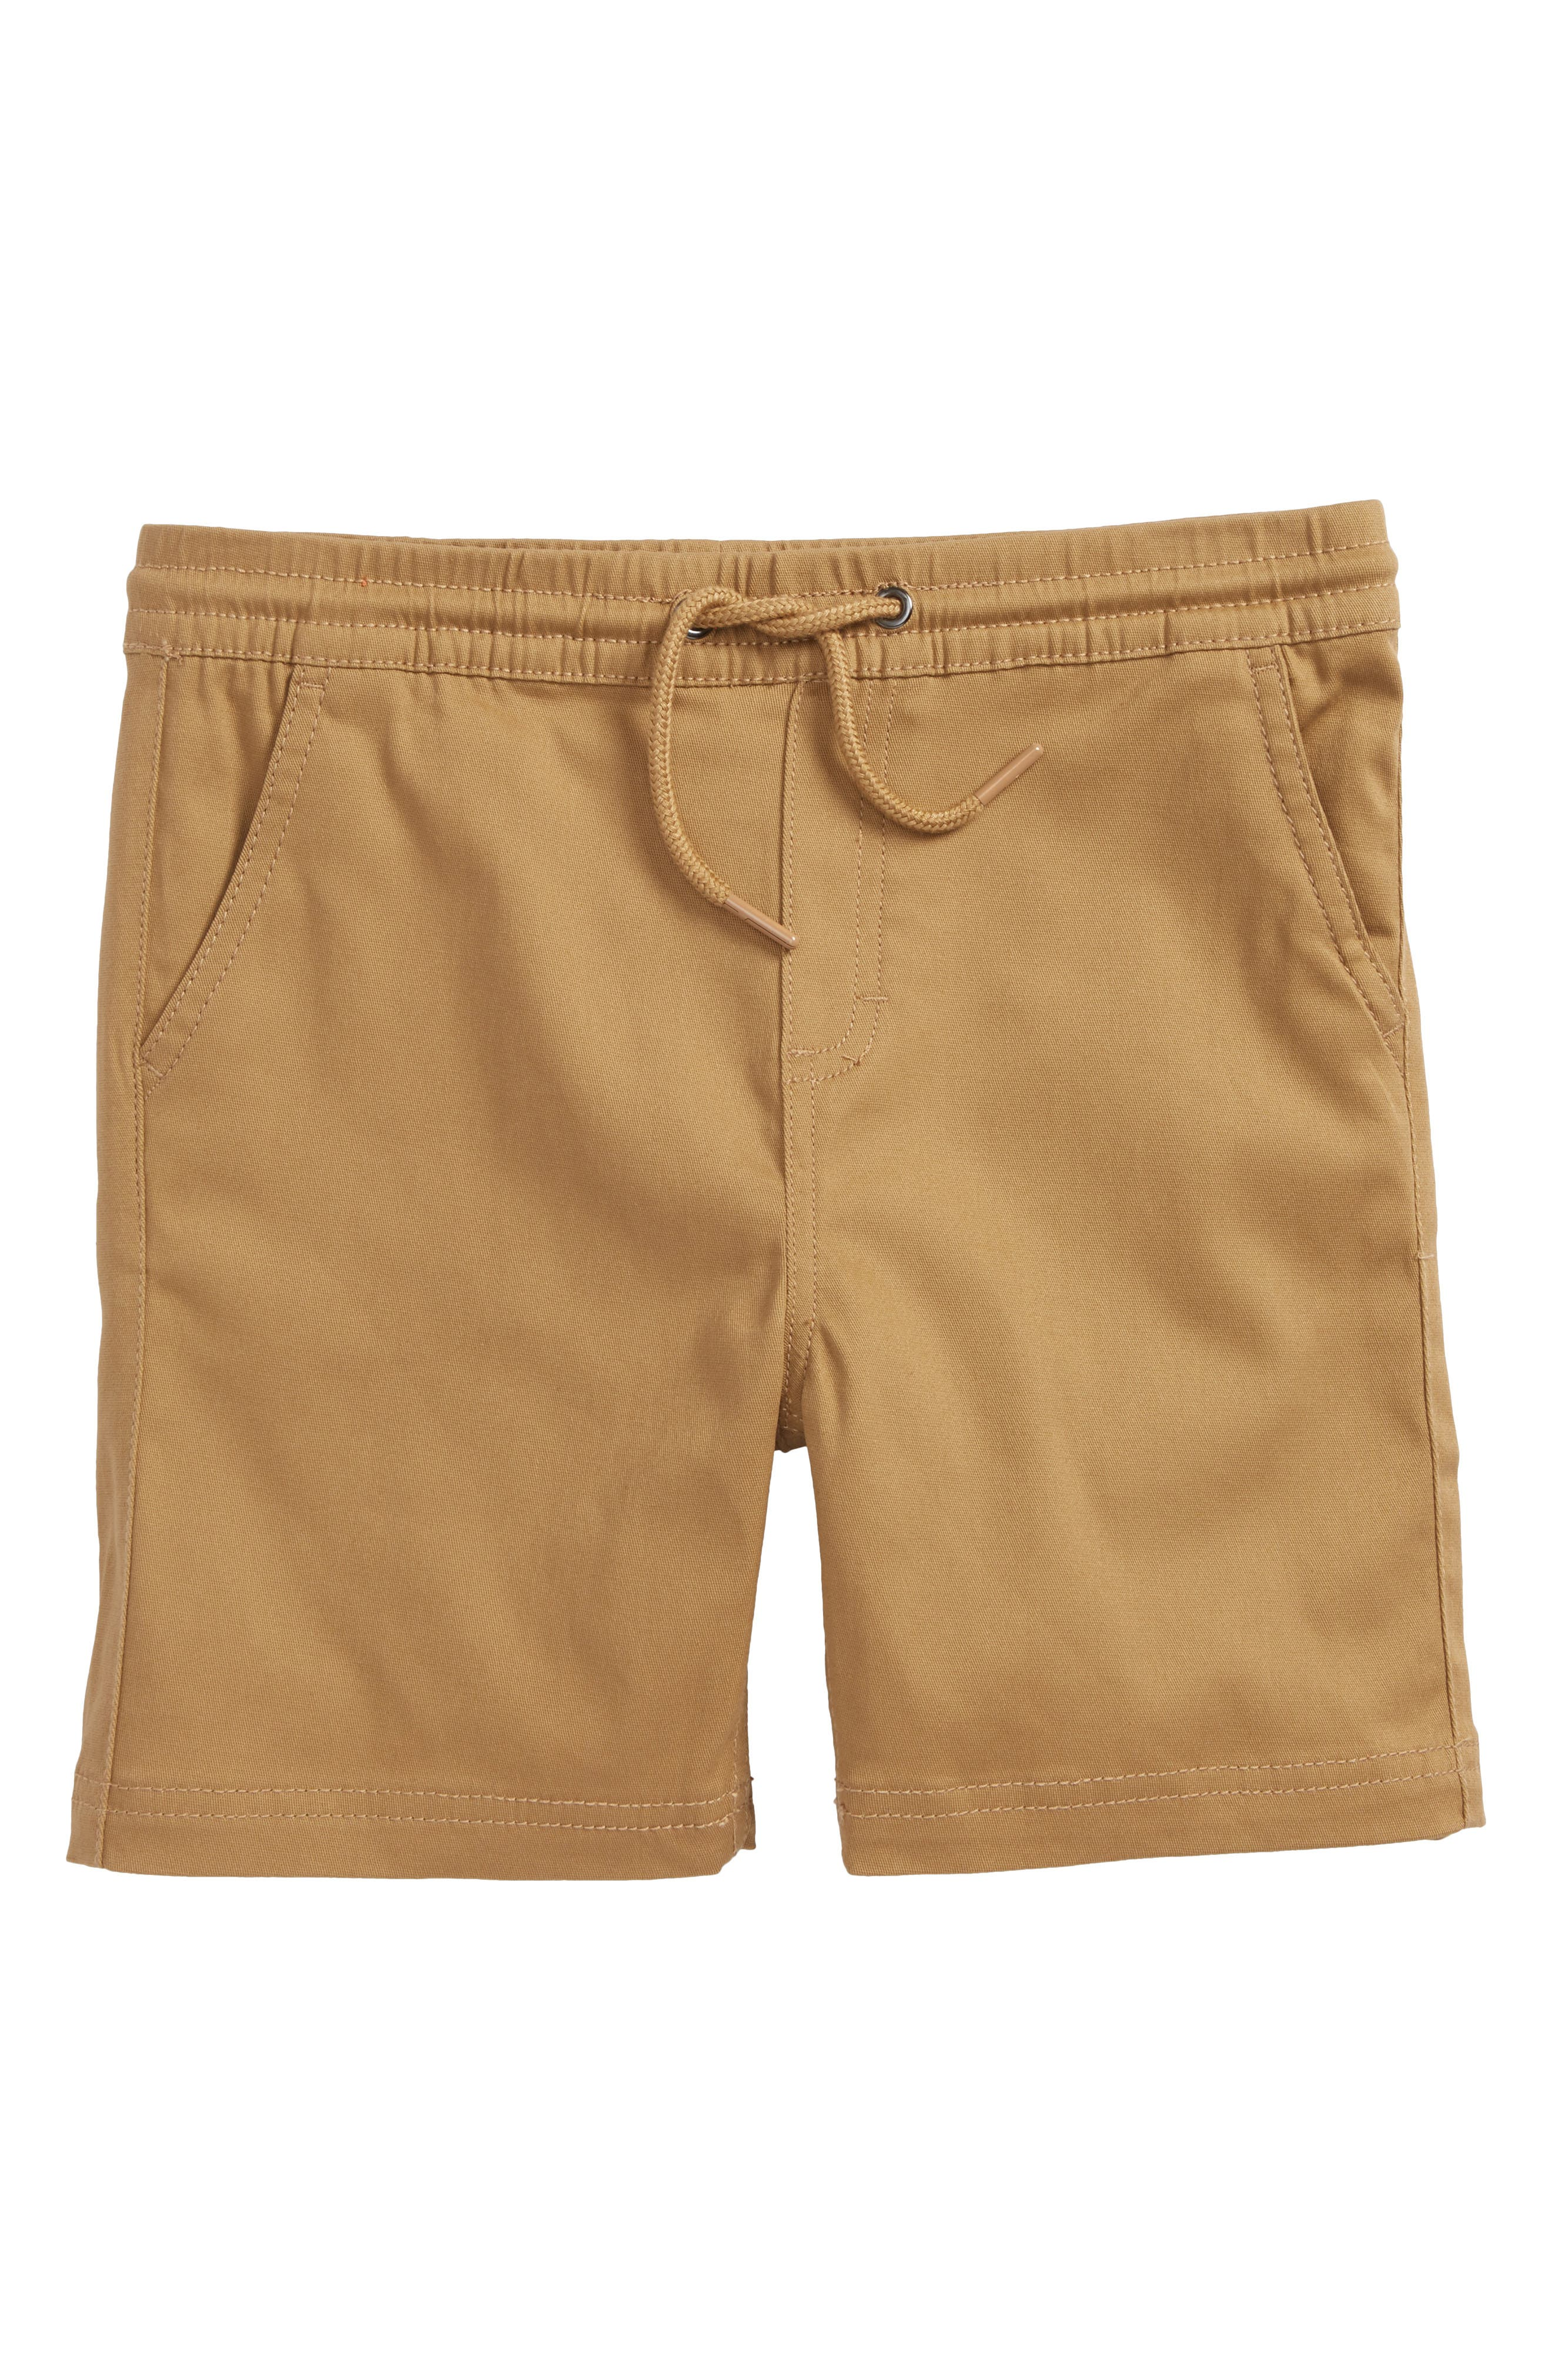 Daniel Stretch Twill Shorts,                             Main thumbnail 1, color,                             Tan